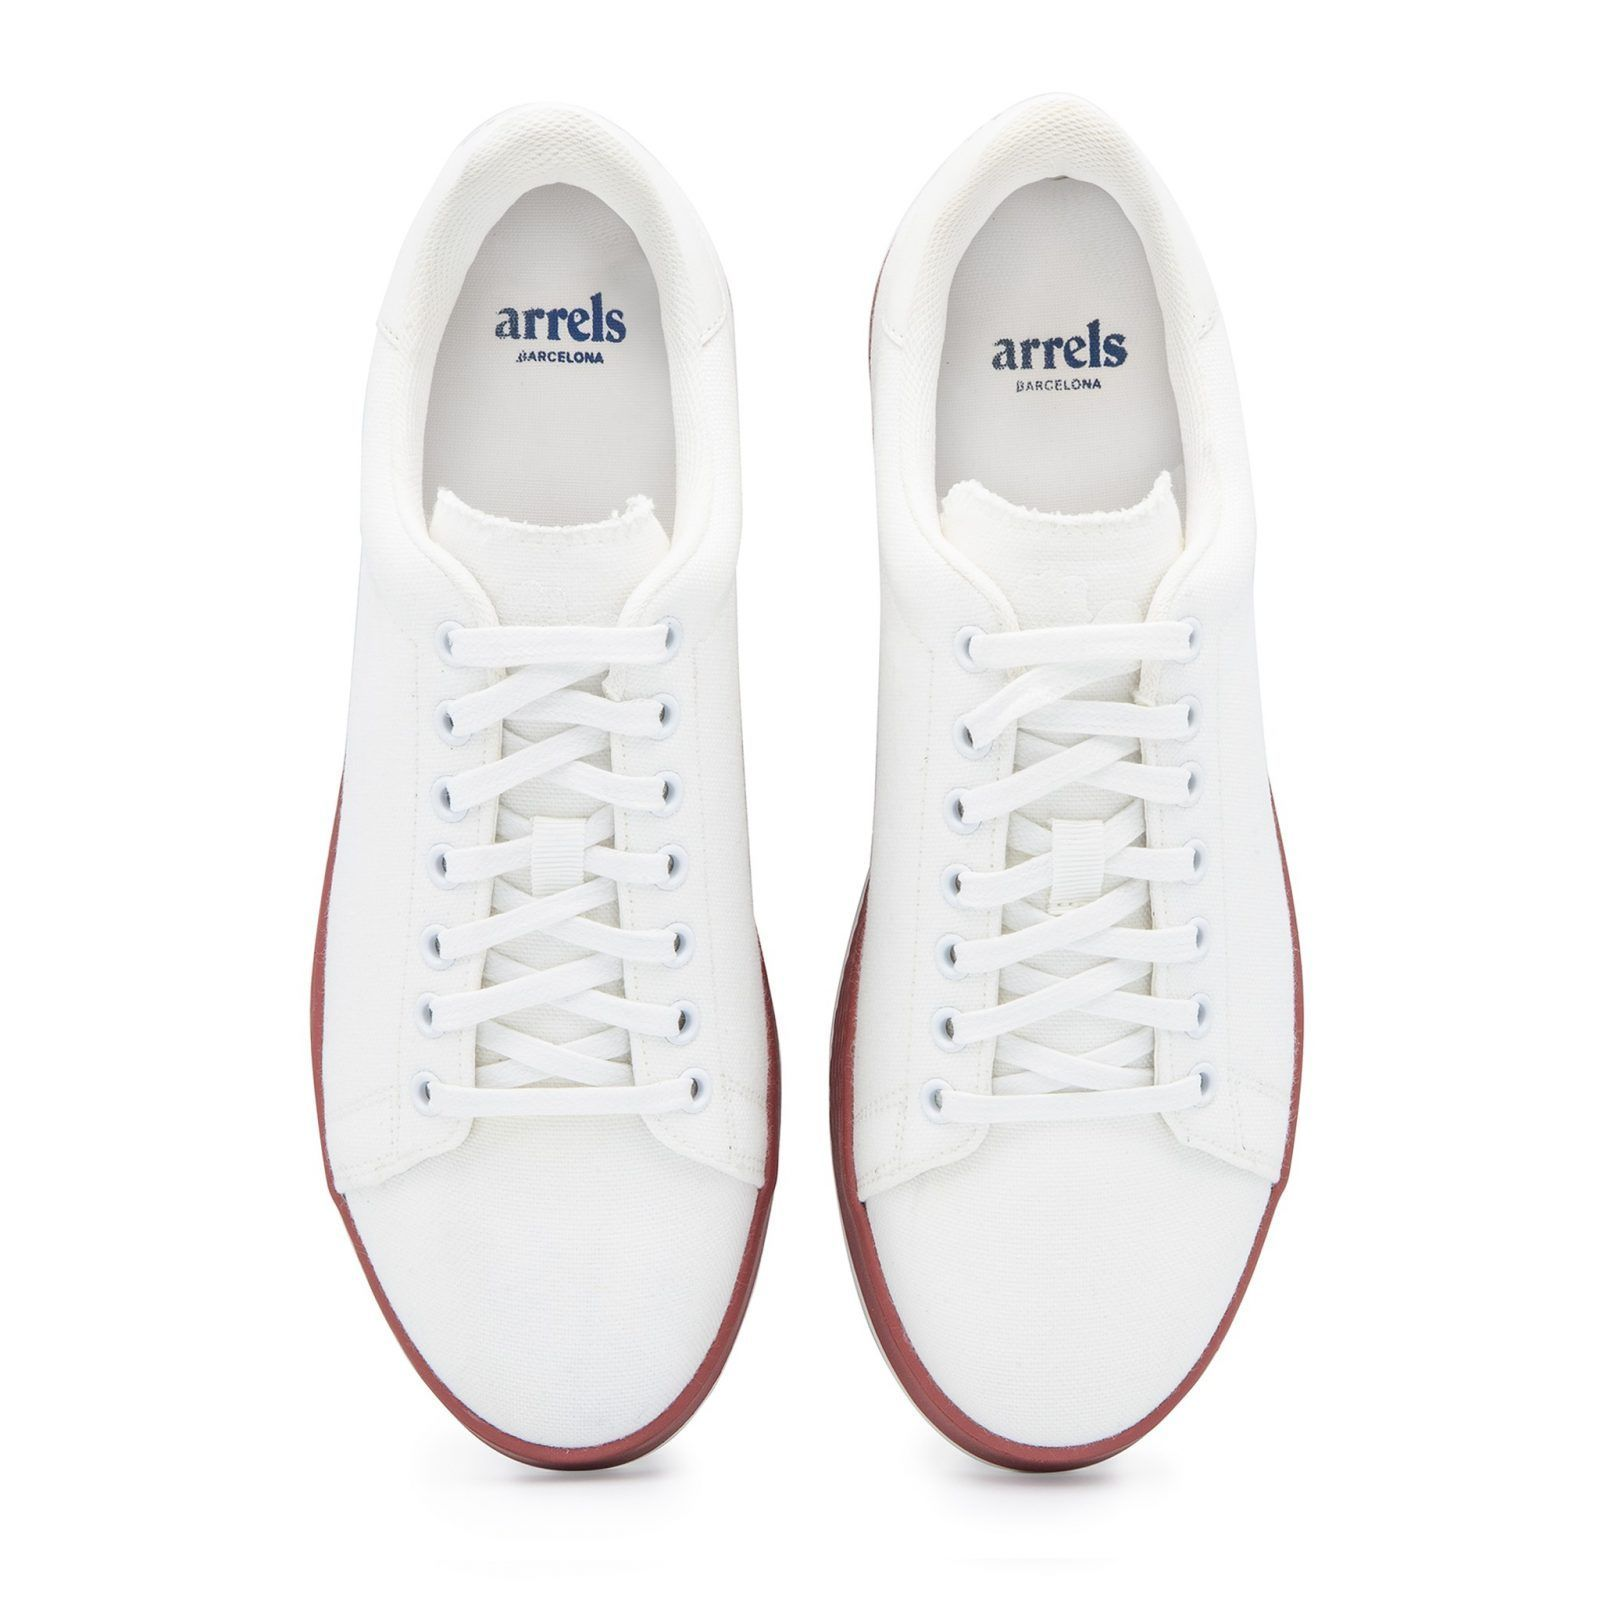 Cotton-Canvas Sneakers with Contrast Sole-634